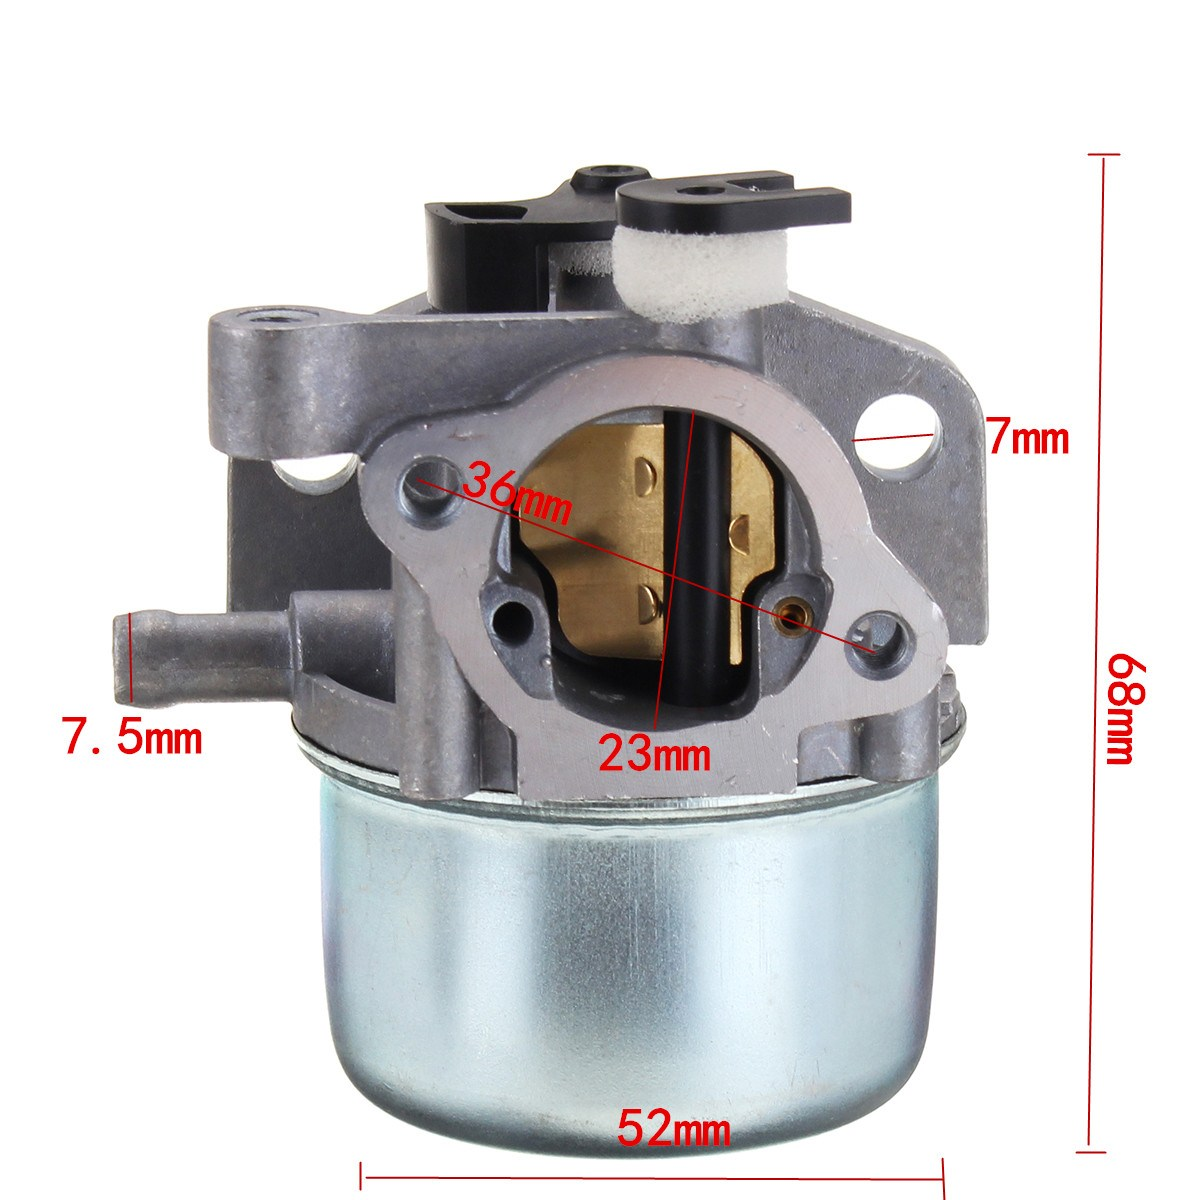 US $8 49 15% OFF|22inch Carburetor Carb For Briggs & Stratton Toro  Craftsman 7 5HP 190cc Engine New-in Carburetors from Automobiles &  Motorcycles on